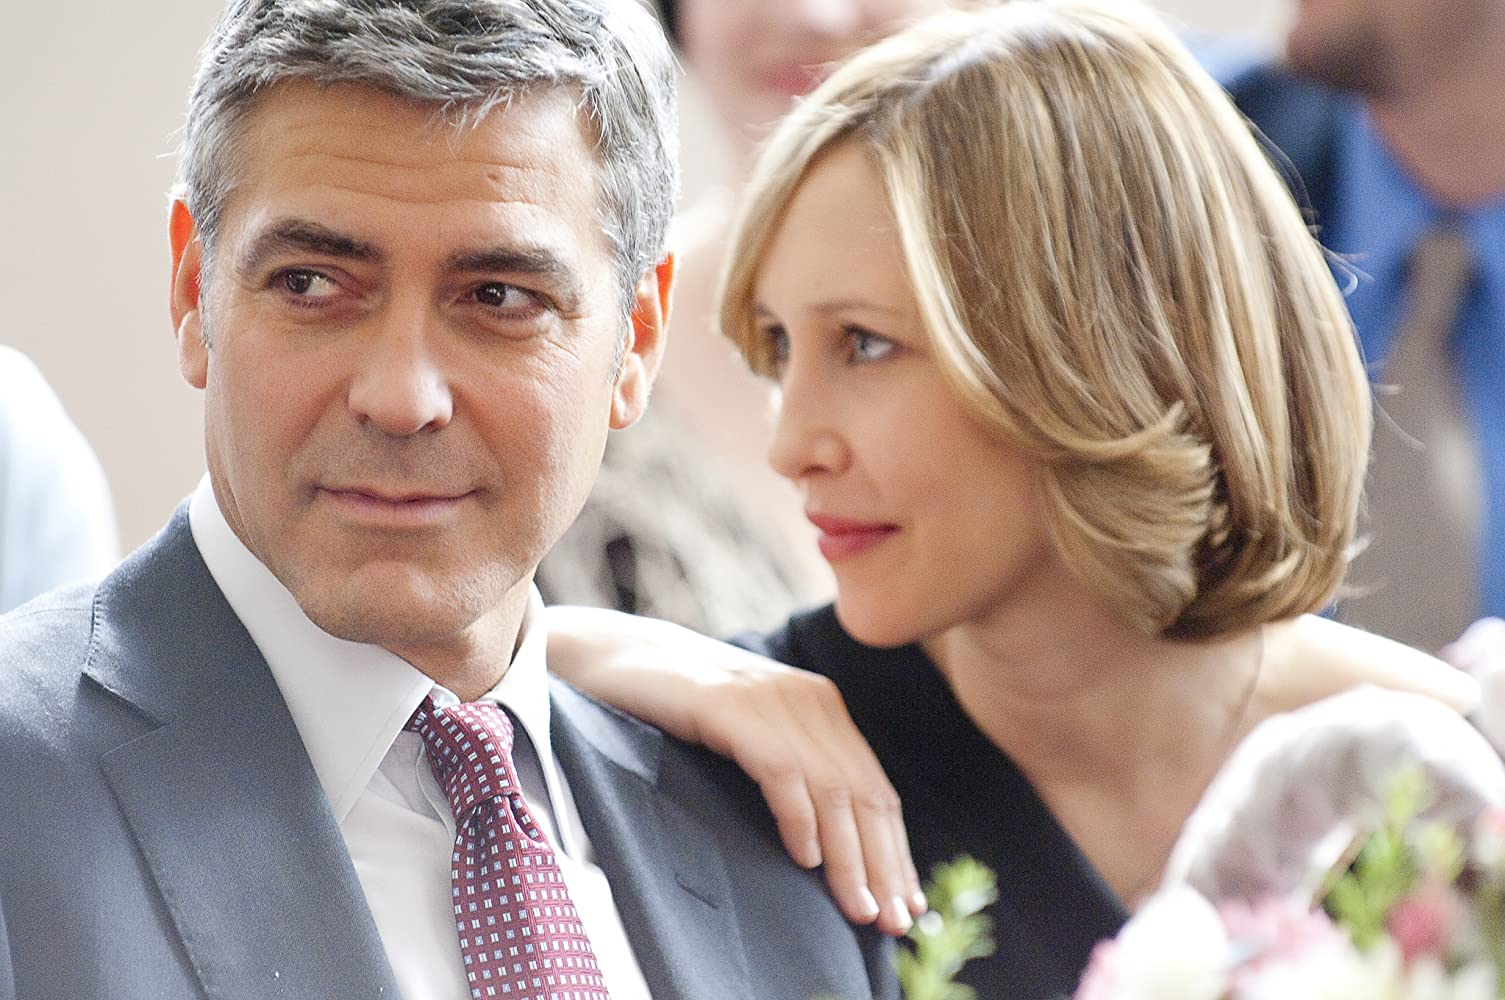 George Clooney and Vera Farmiga in Up in the Air (2009)